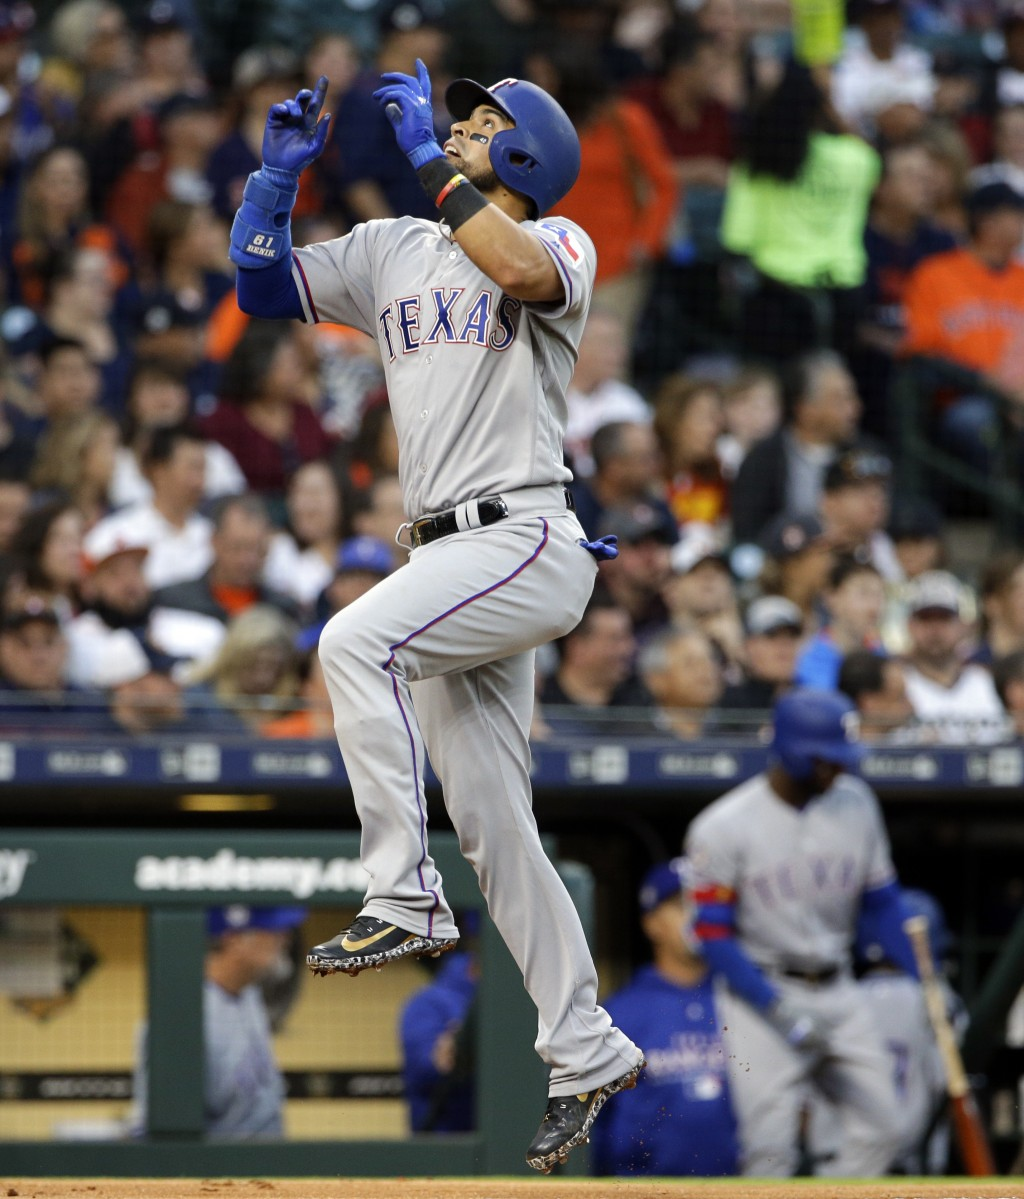 Texas Rangers Robinson Chirinos reacts as he crosses home plate after hitting a home run during the third inning of a baseball game against the Housto